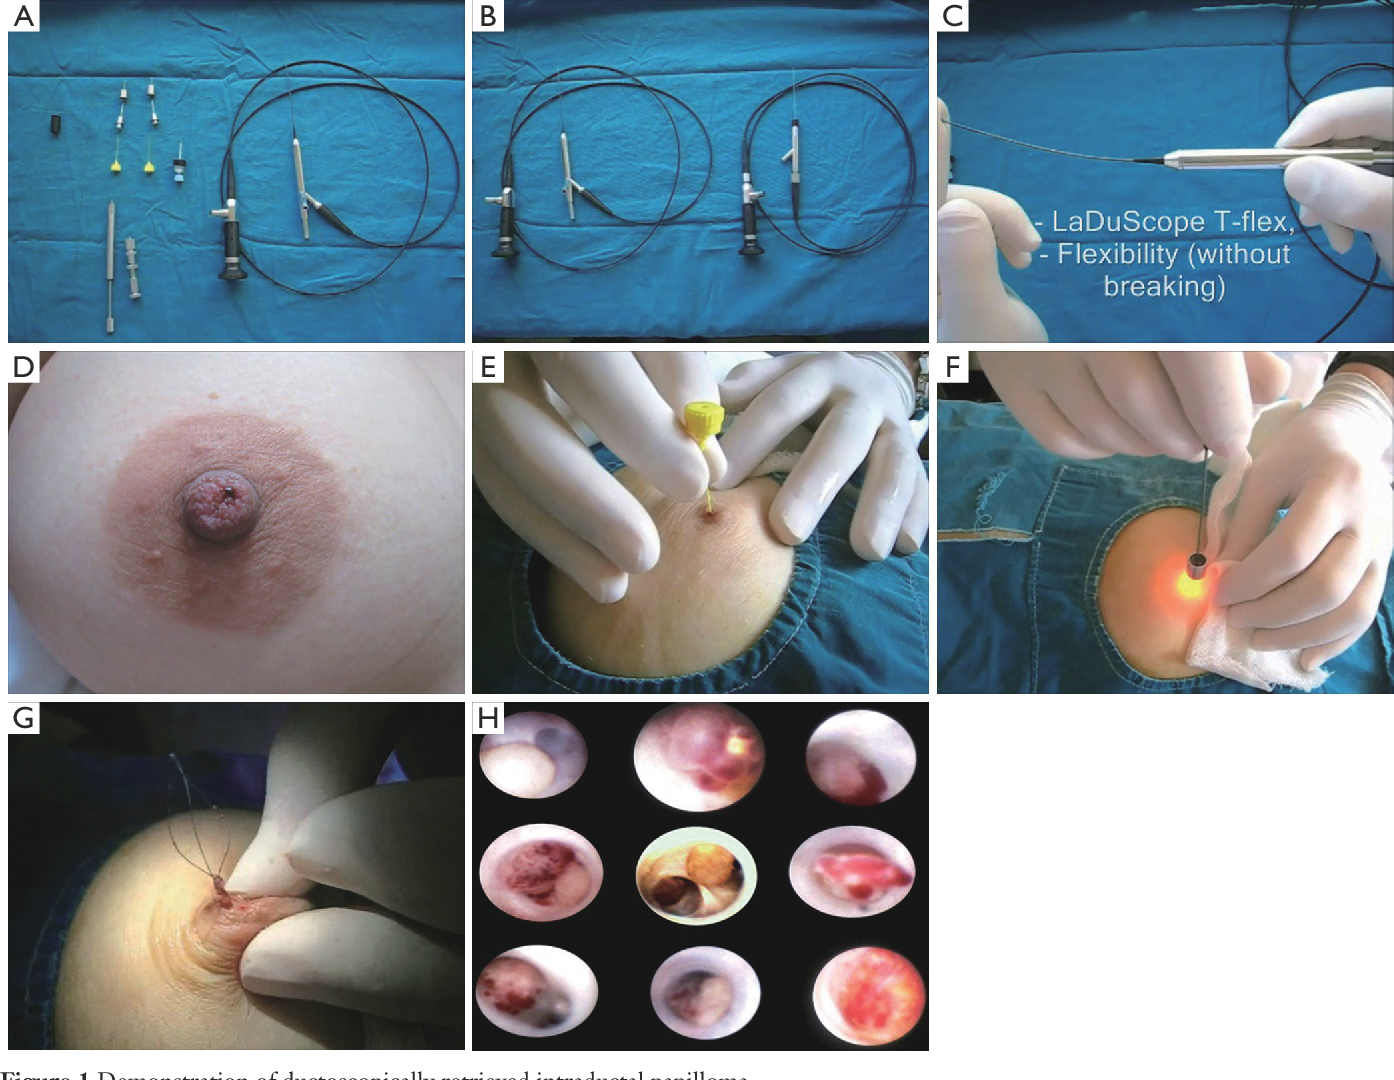 papilloma in breast surgery)